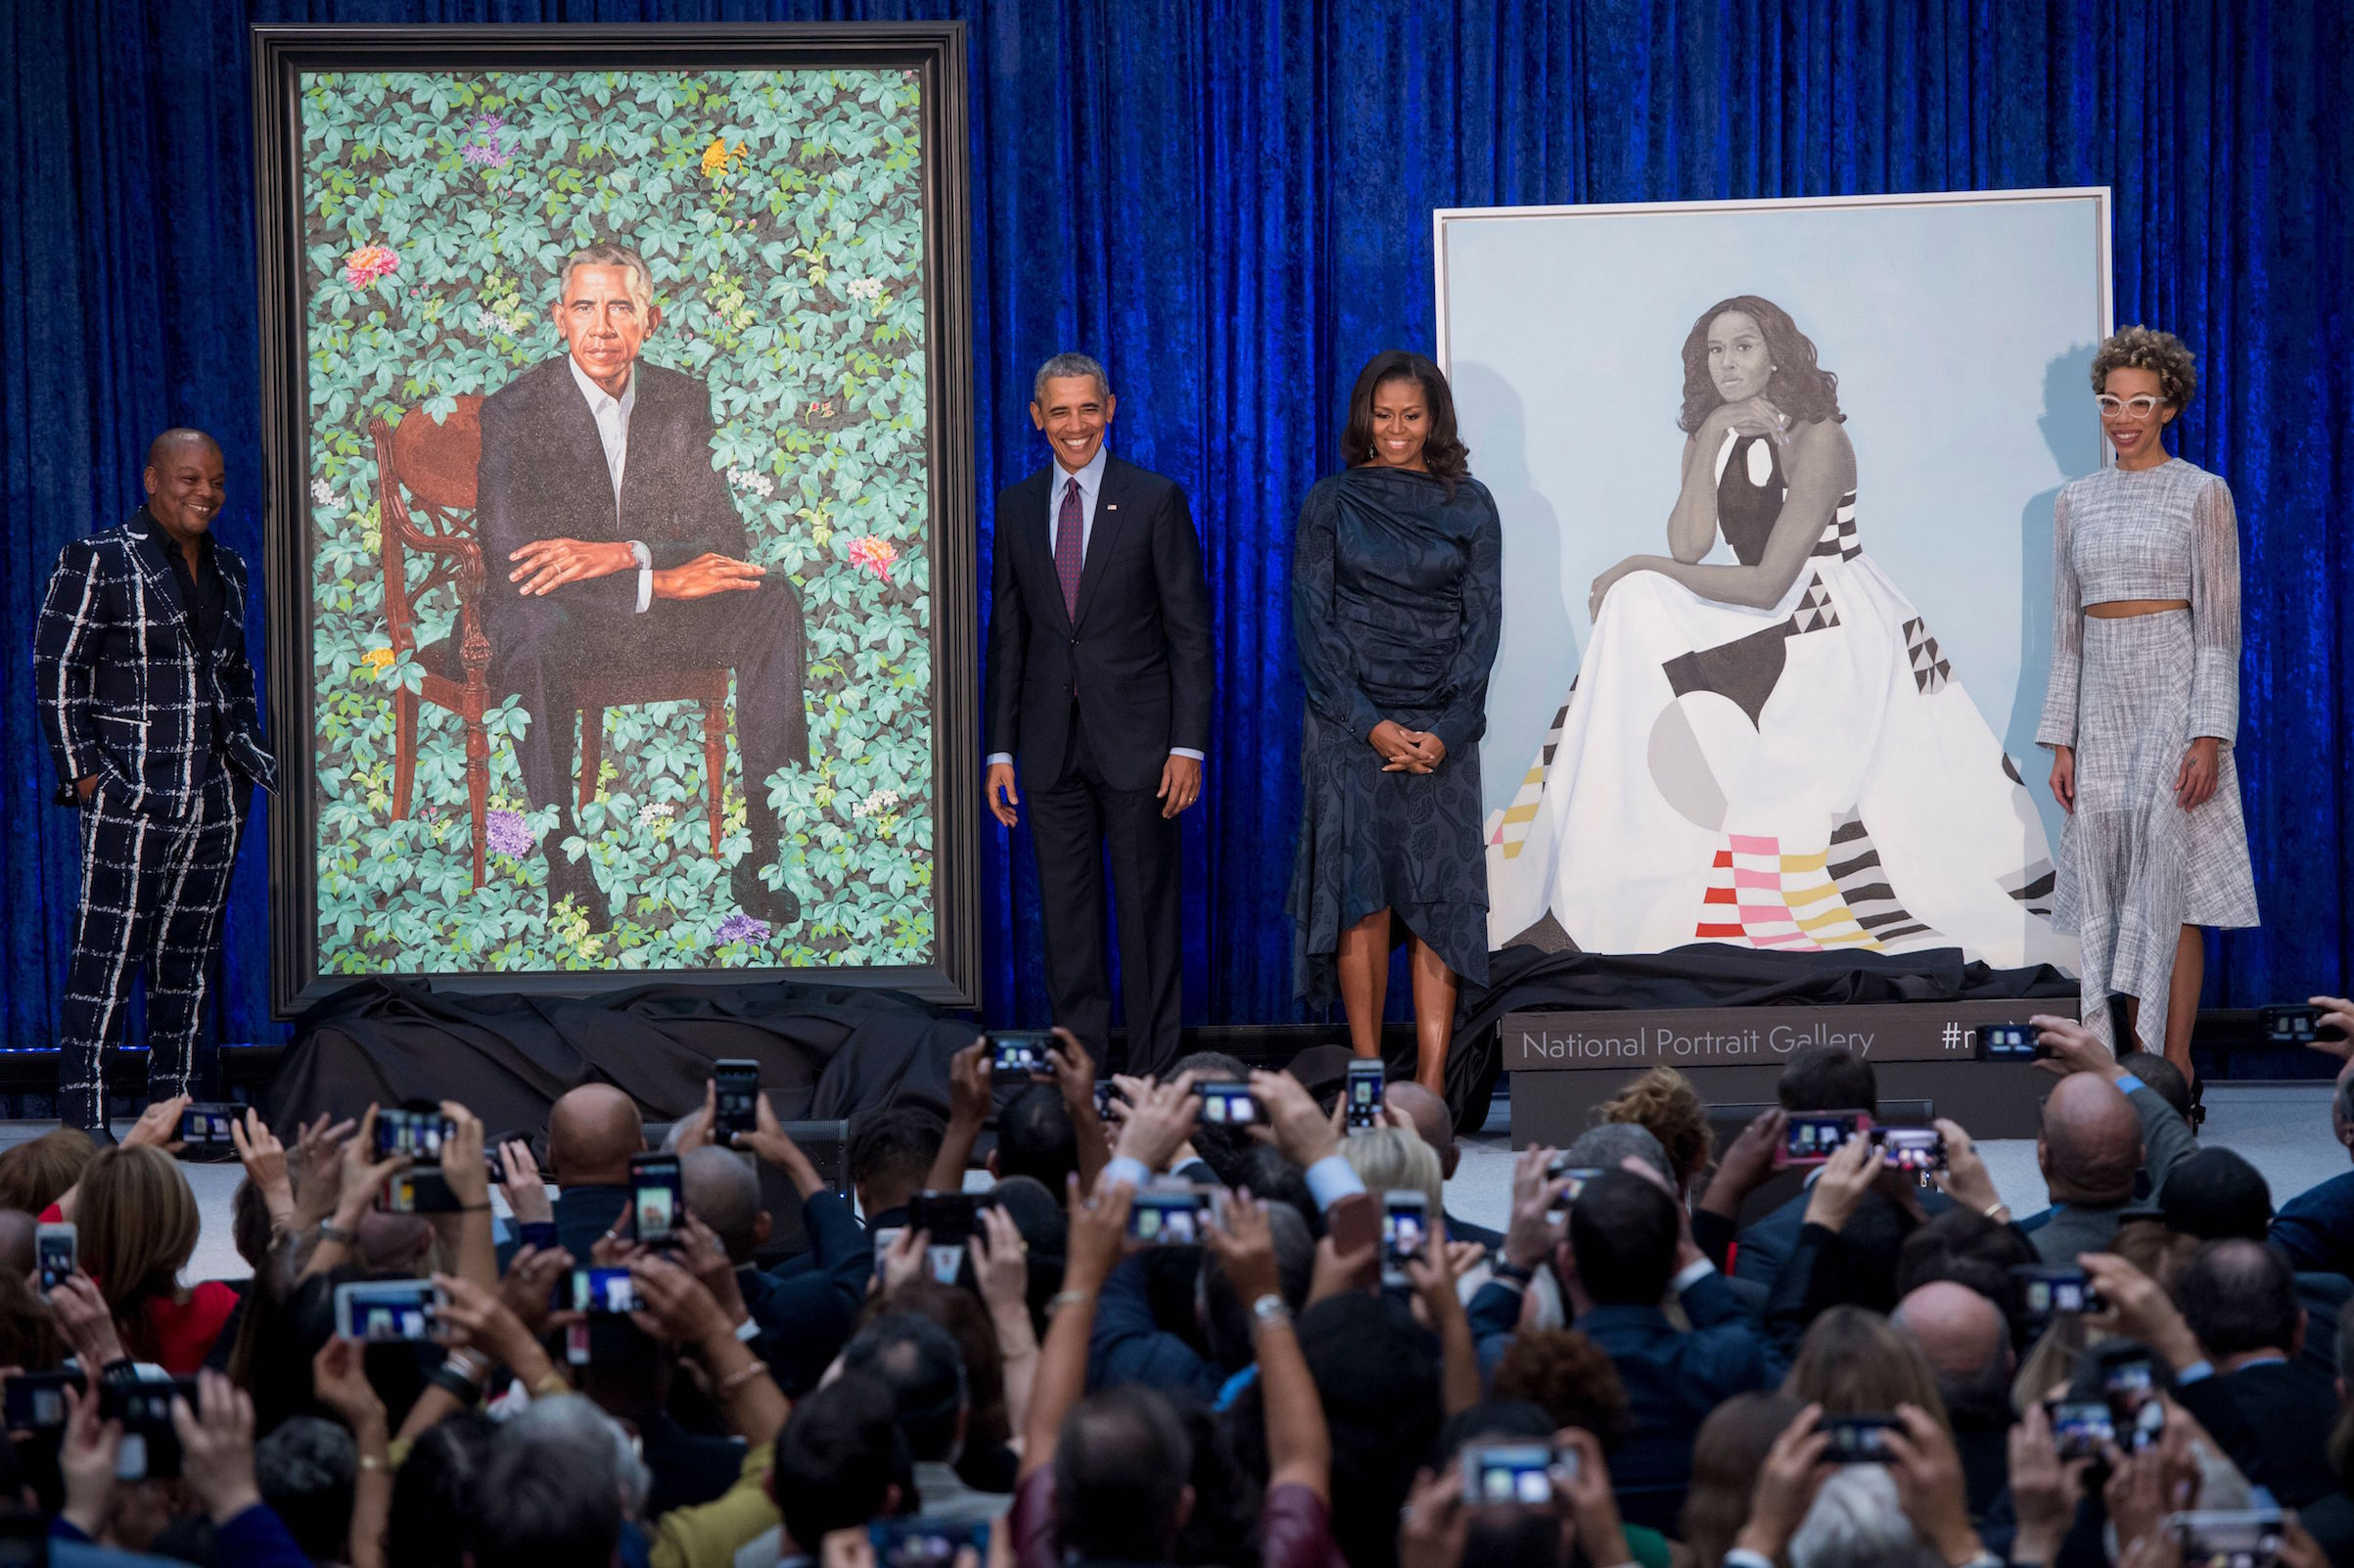 Portraits Of Barack And Michelle Obama Unveiled At The National Portrait Gallery